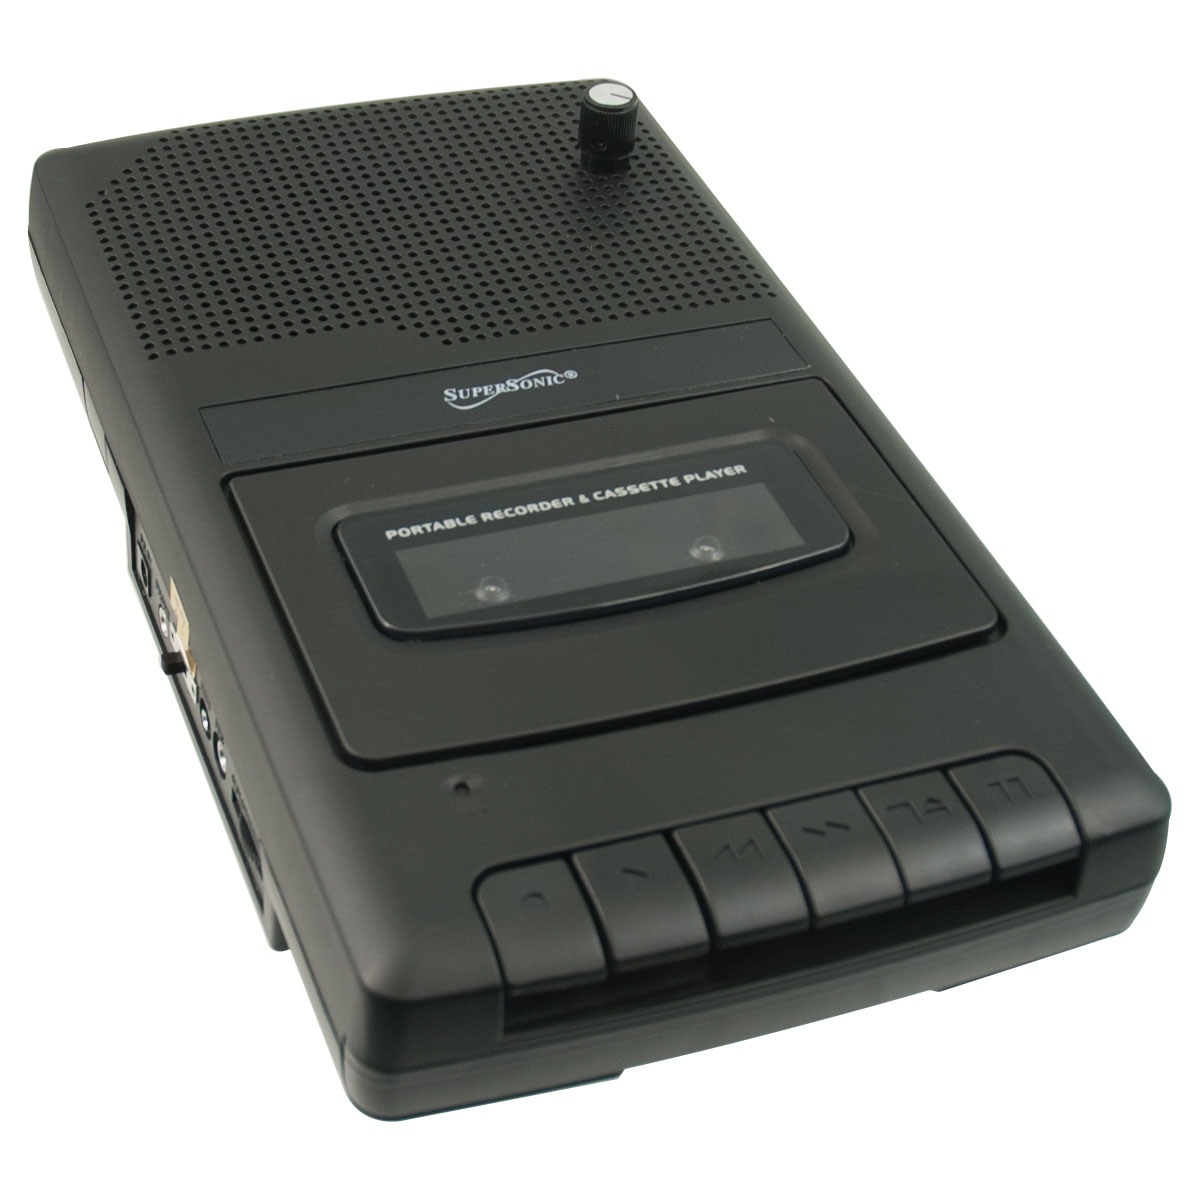 RCA Portable Cassette Recorder and Player Price: $119.95